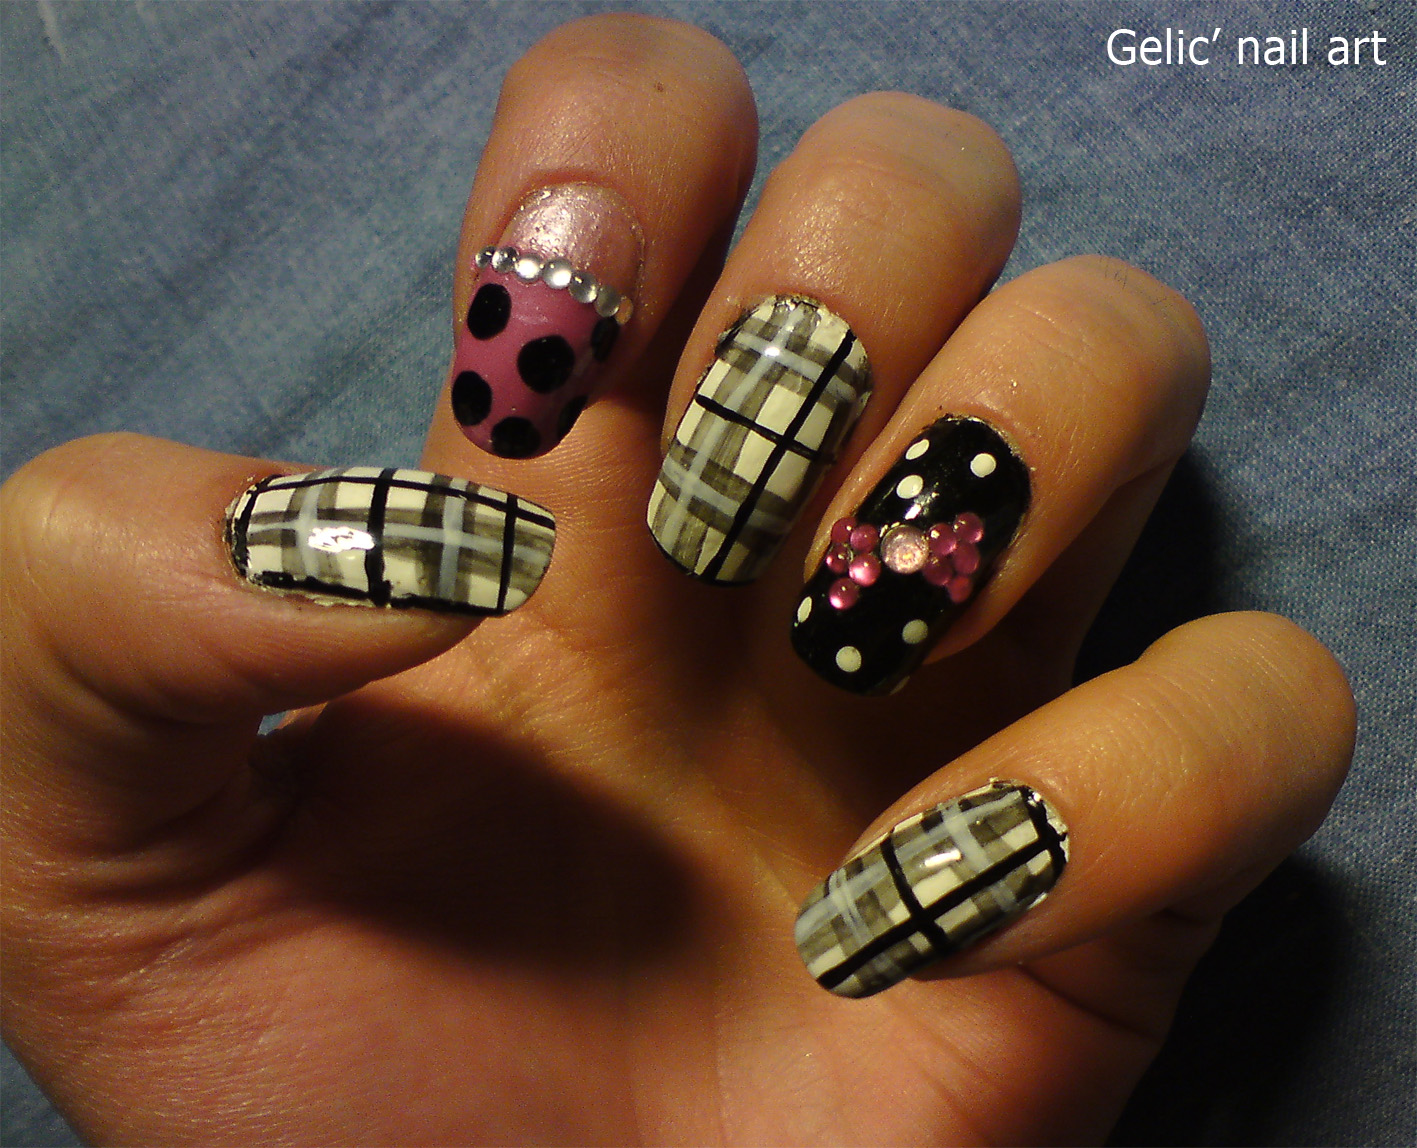 Gelic nail art june 2012 checked nail art with rhinestone bows prinsesfo Image collections